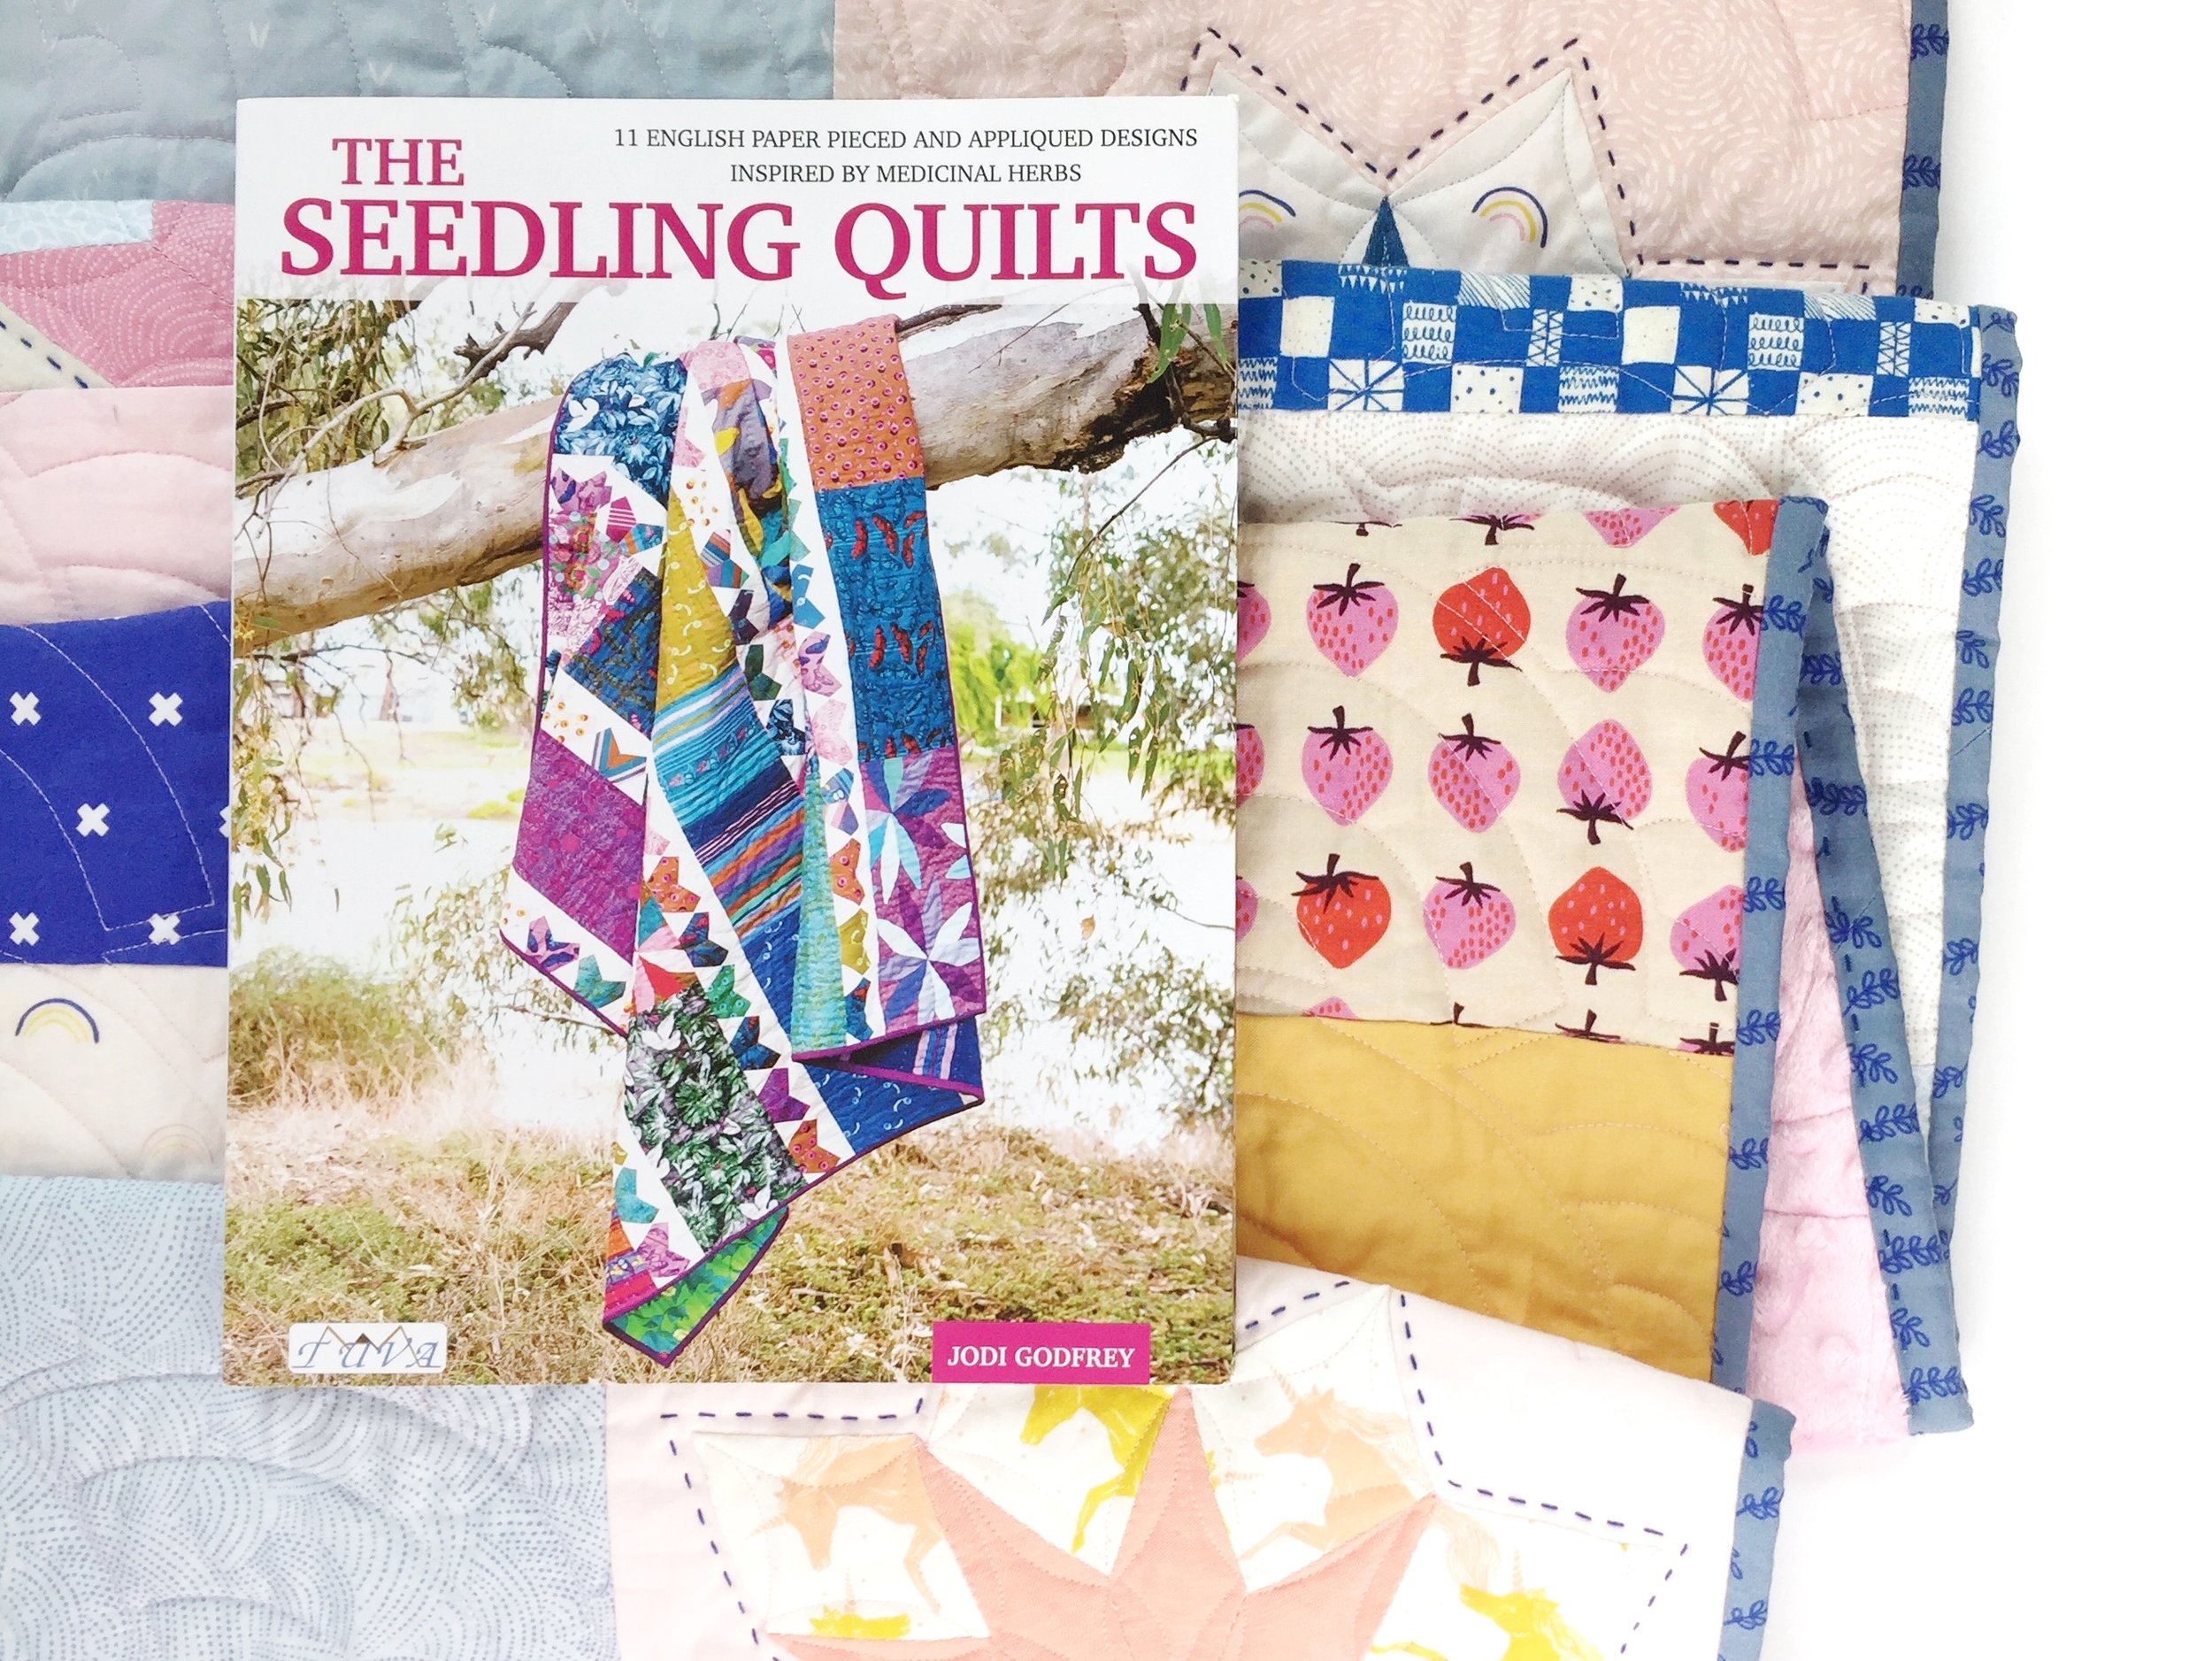 The Seedling Quilts Book.jpg